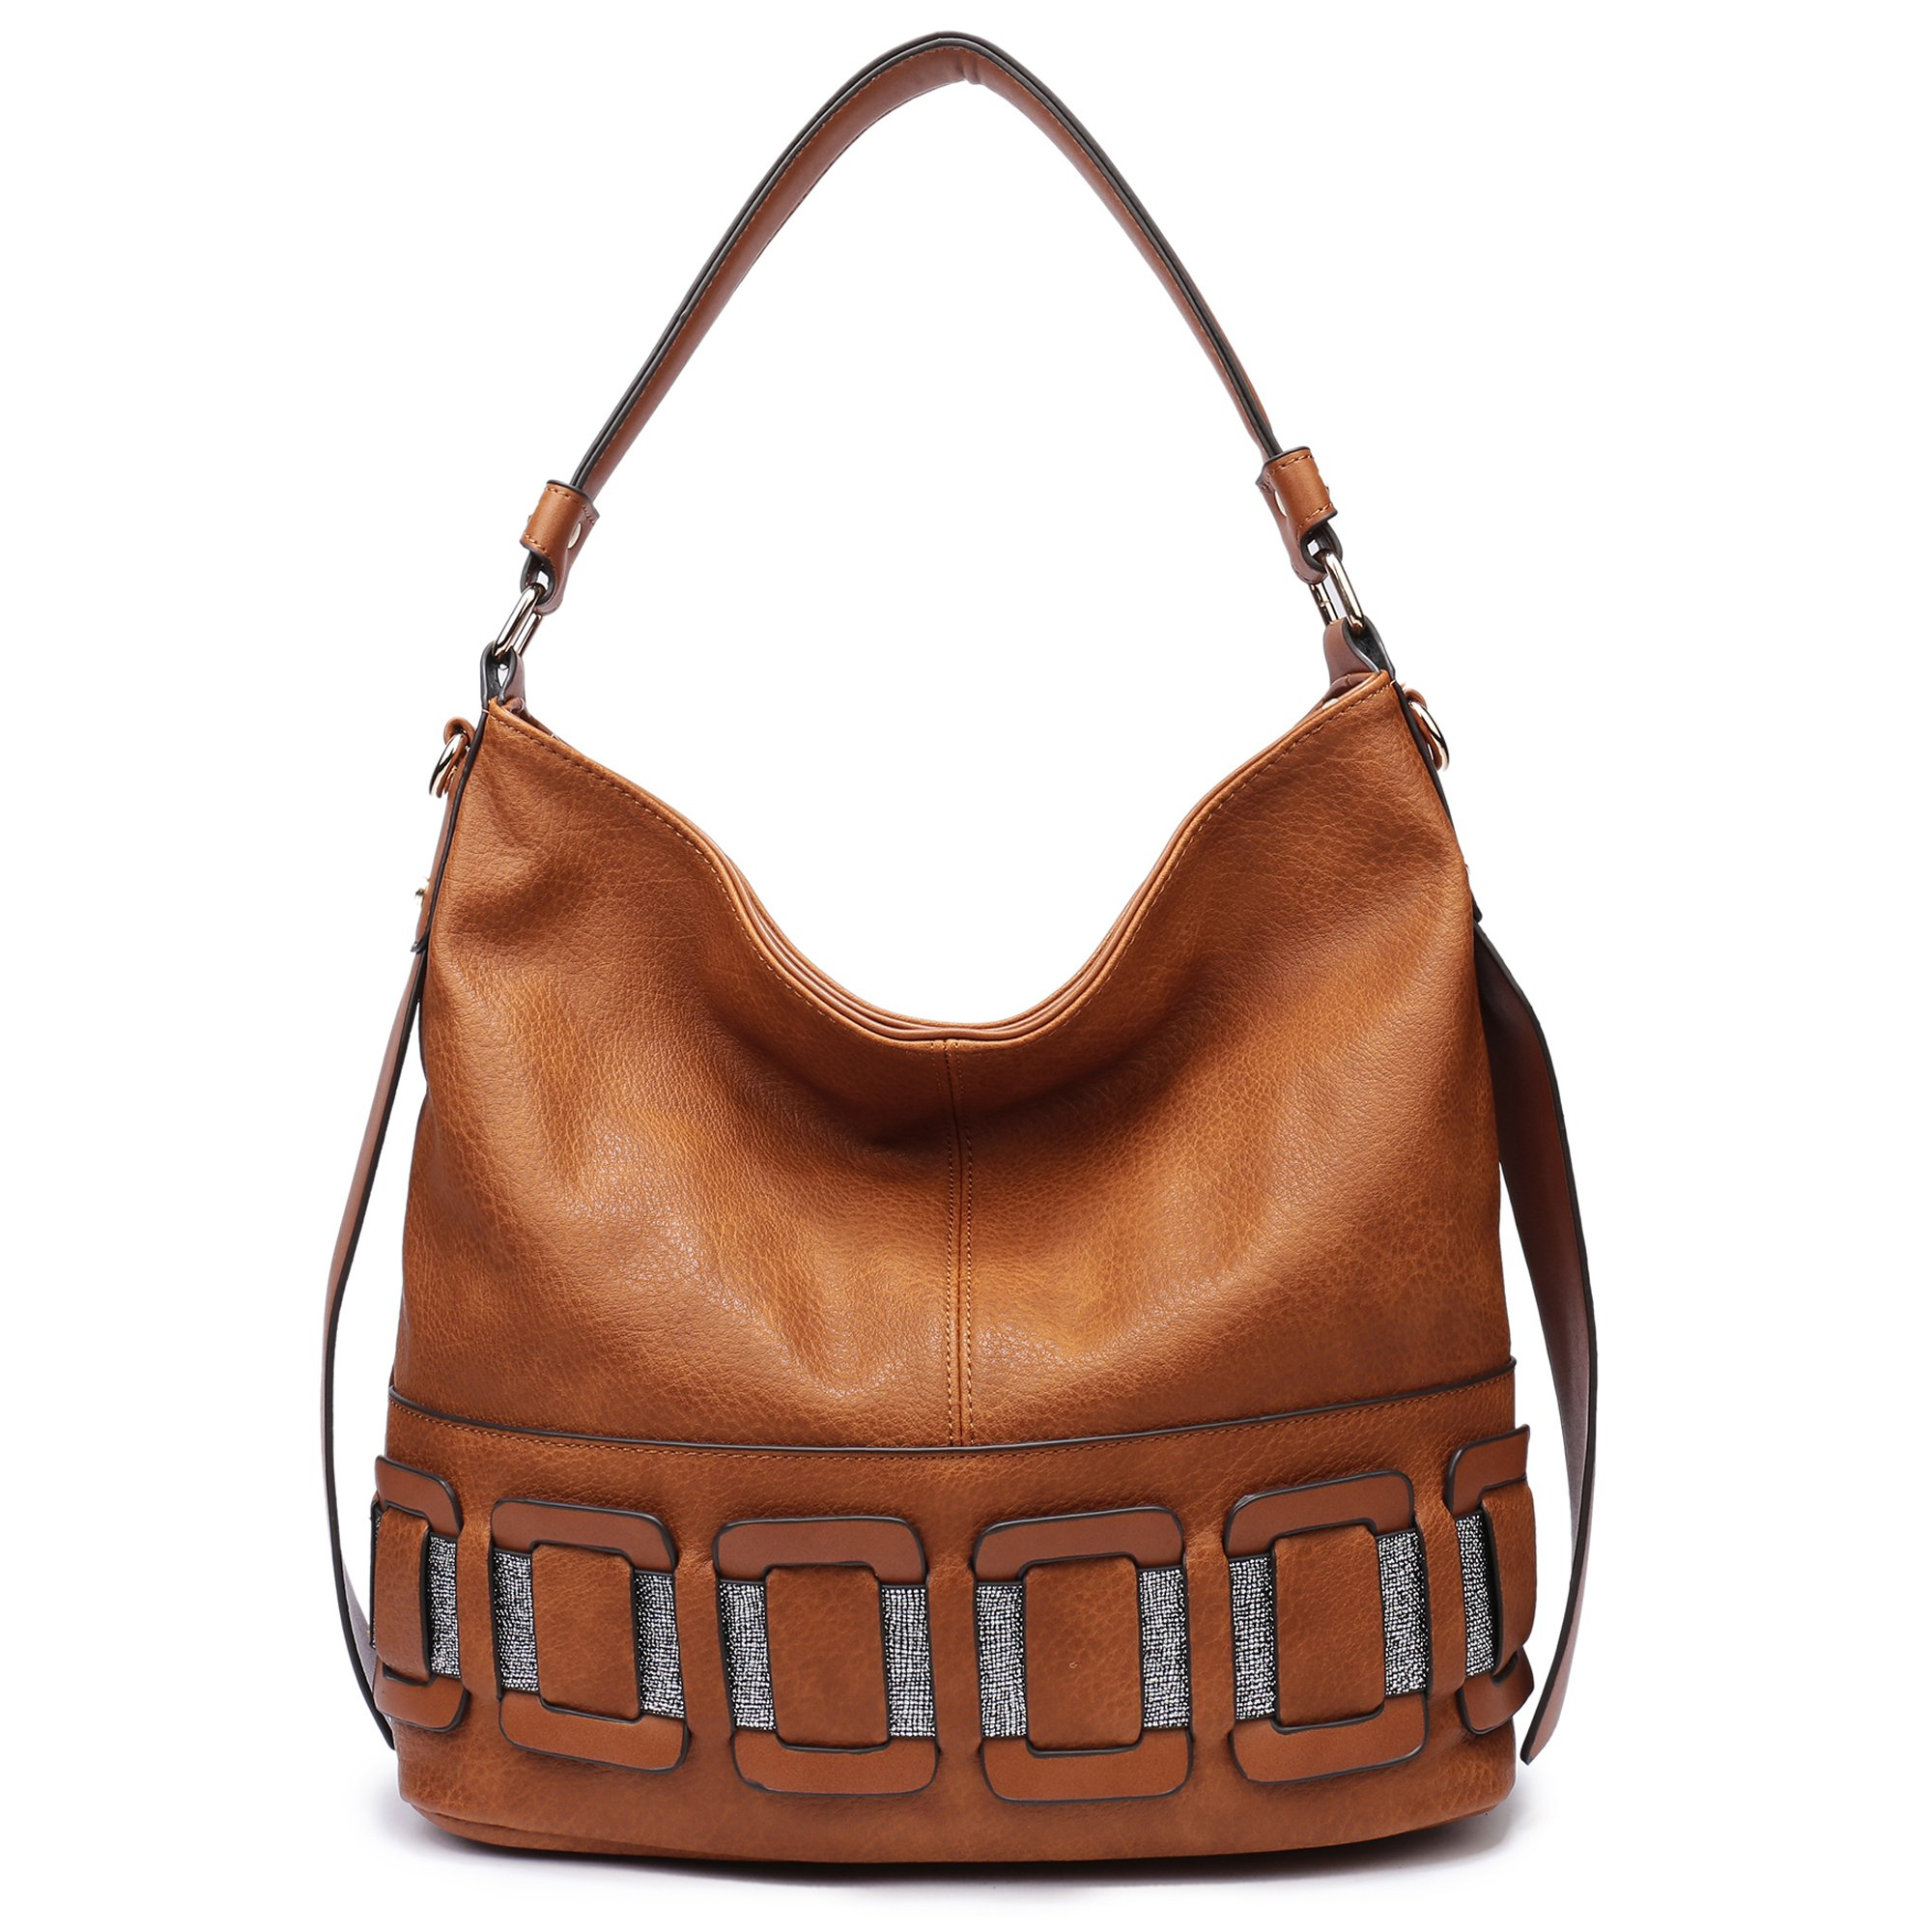 Hobo Handbags for Women, Large Purses Tote Shoulder Bags With Adjustable Strap